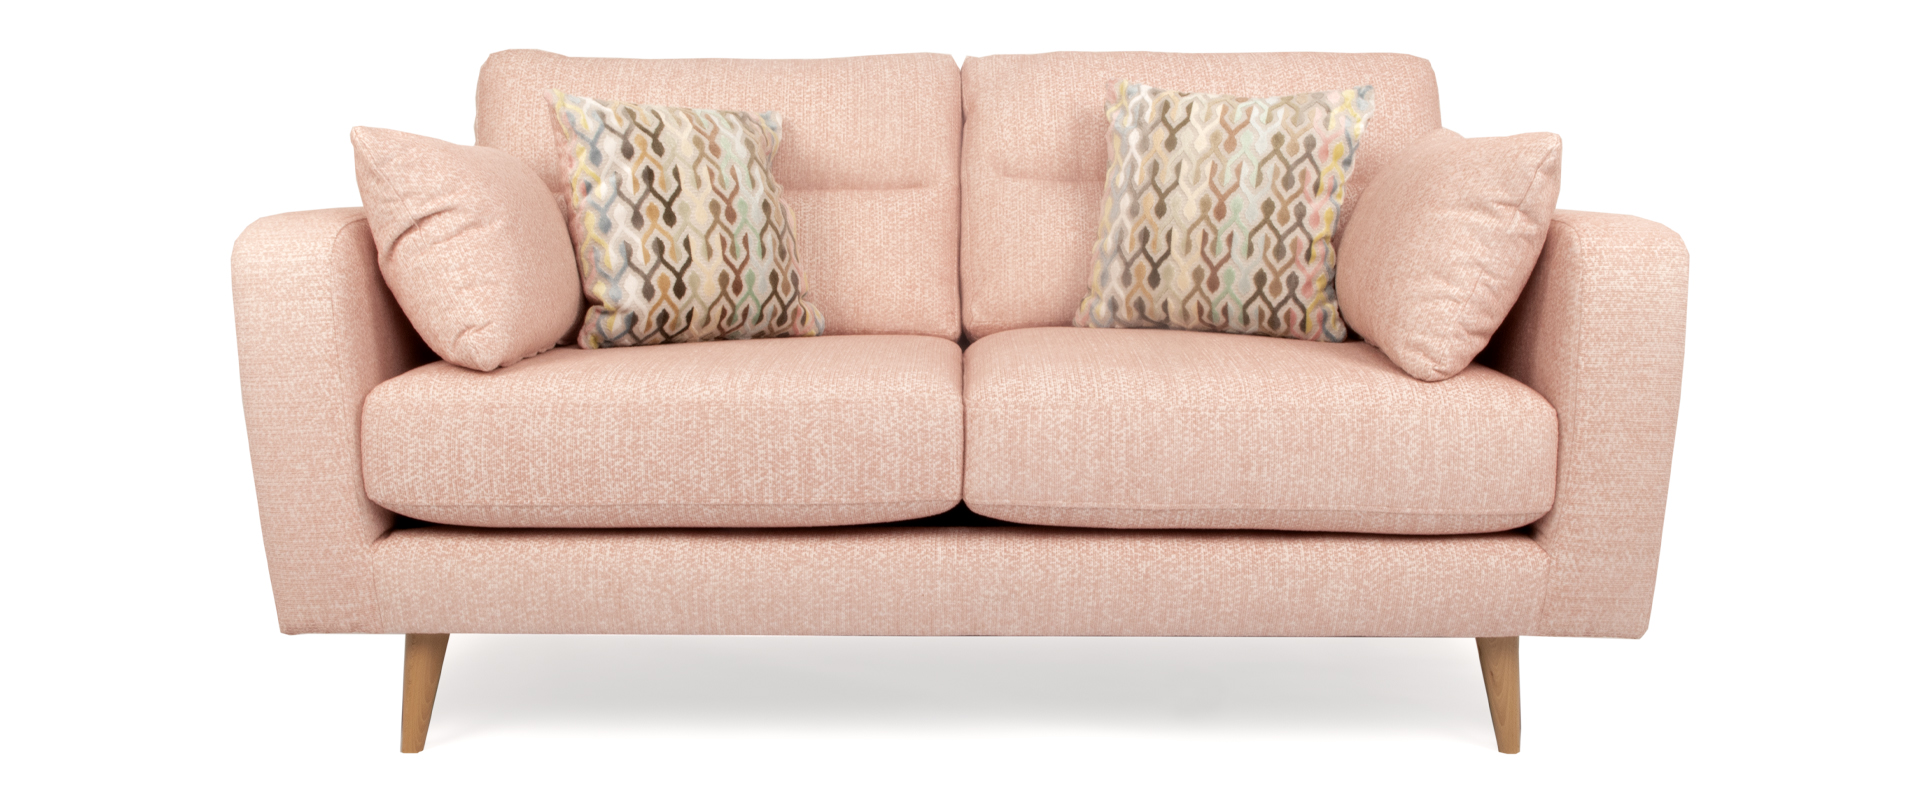 Astounding Brighton 2 Seater Fabric Sofa In Blush Pink Ncnpc Chair Design For Home Ncnpcorg